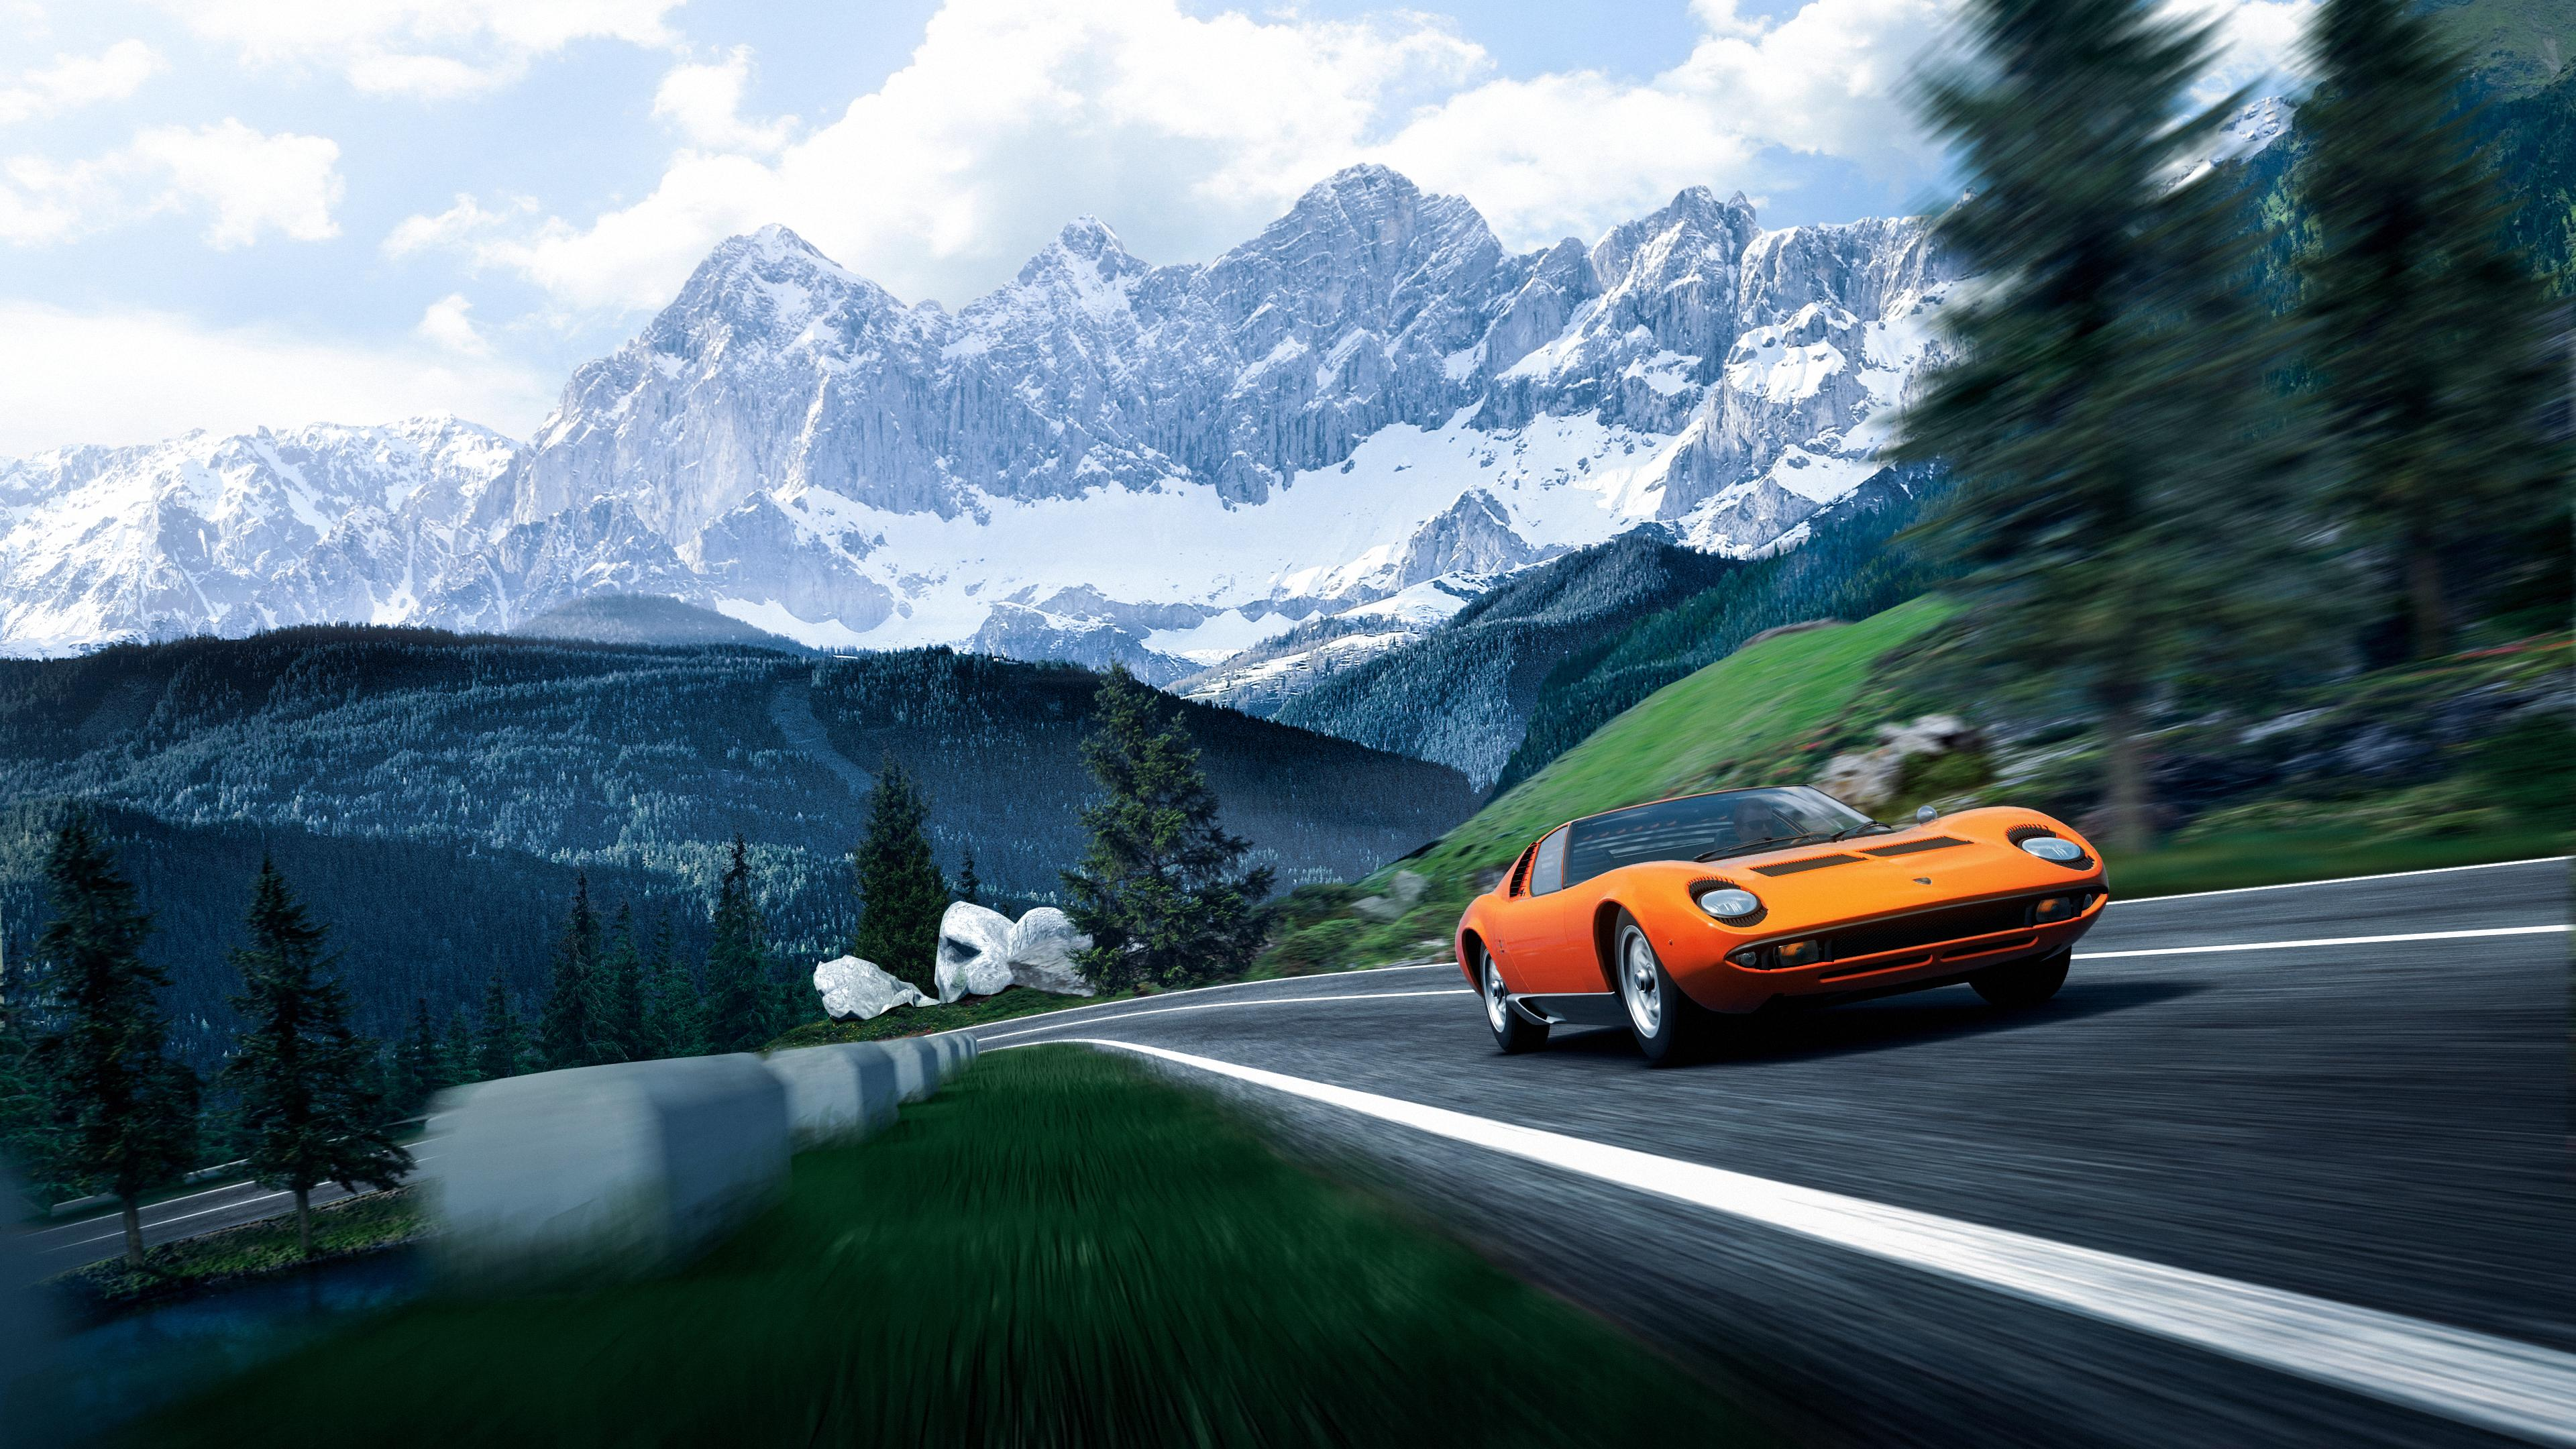 Miura 4k Wallpapers For Your Desktop Or Mobile Screen Free And Easy